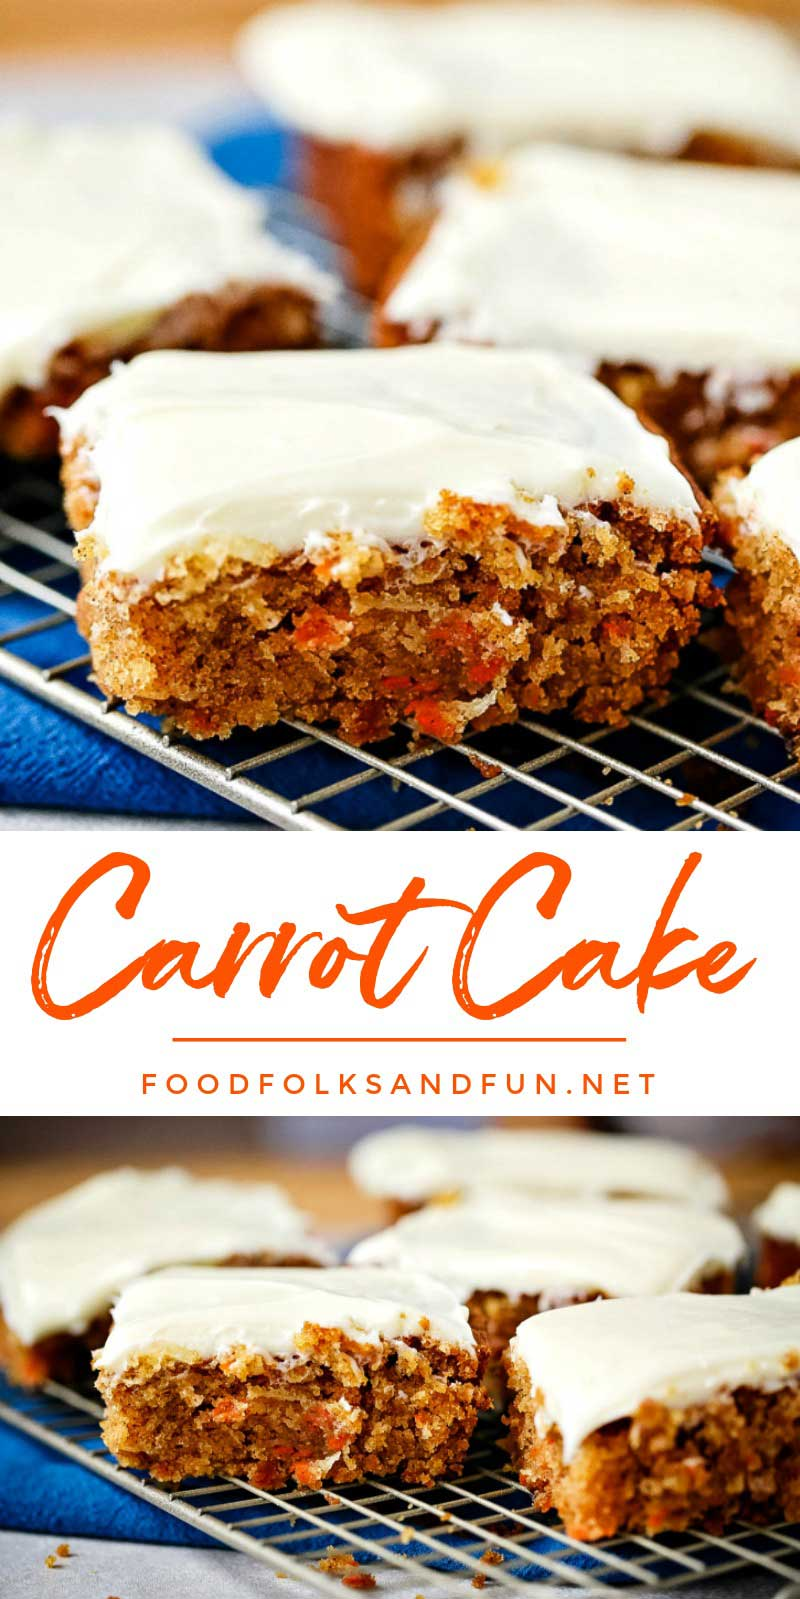 This easy Carrot Cake recipe is just the thing when you get a hankering for moist carrot cake and need it fast! It's a simple recipe with all of the important elements: spicy moist cake and fluffy cream cheese frosting. via @foodfolksandfun